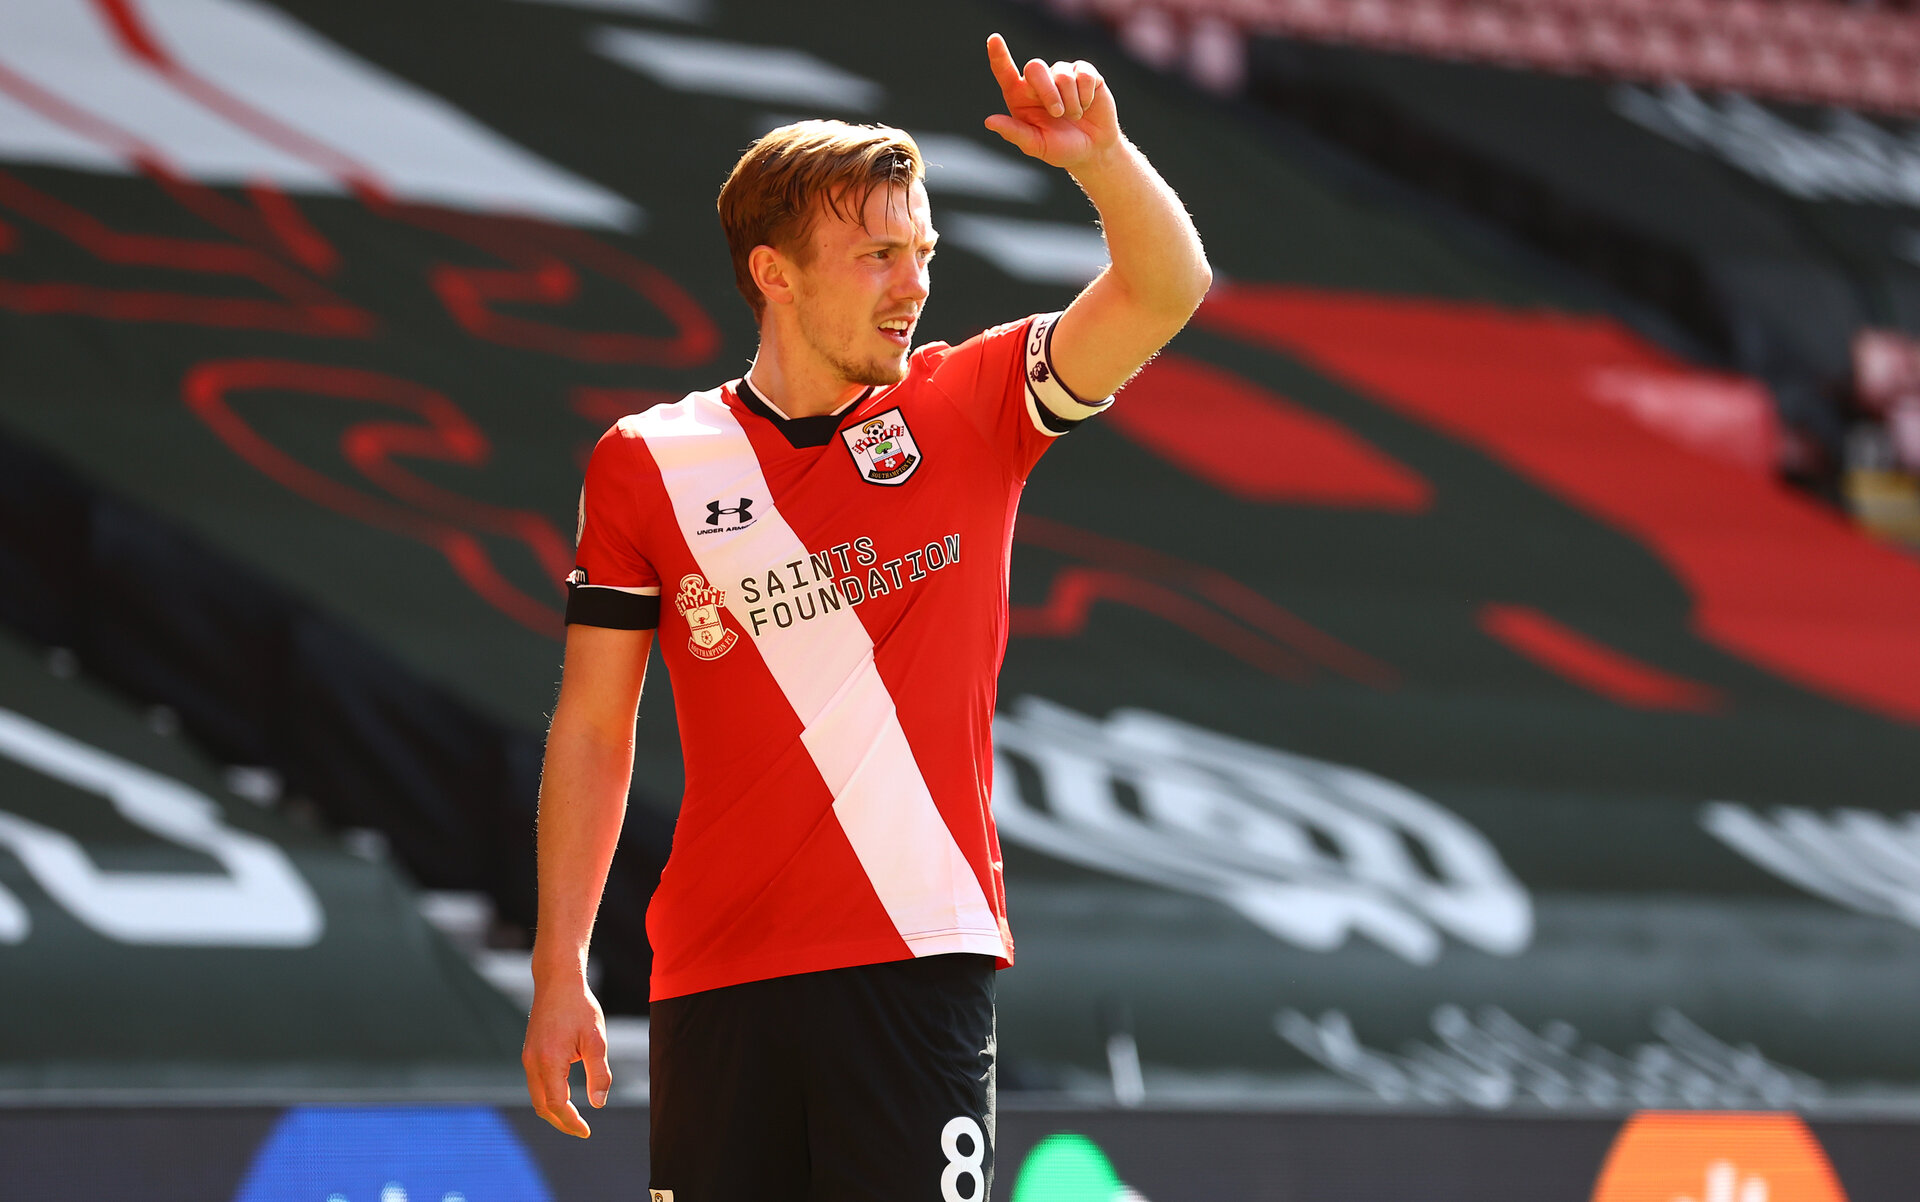 SOUTHAMPTON, ENGLAND - APRIL 04: James Ward-Prowse of during the Premier League match between Southampton and Burnley at St Mary's Stadium on April 04, 2021 in Southampton, England. Sporting stadiums around the UK remain under strict restrictions due to the Coronavirus Pandemic as Government social distancing laws prohibit fans inside venues resulting in games being played behind closed doors. (Photo by Matt Watson/Southampton FC via Getty Images)